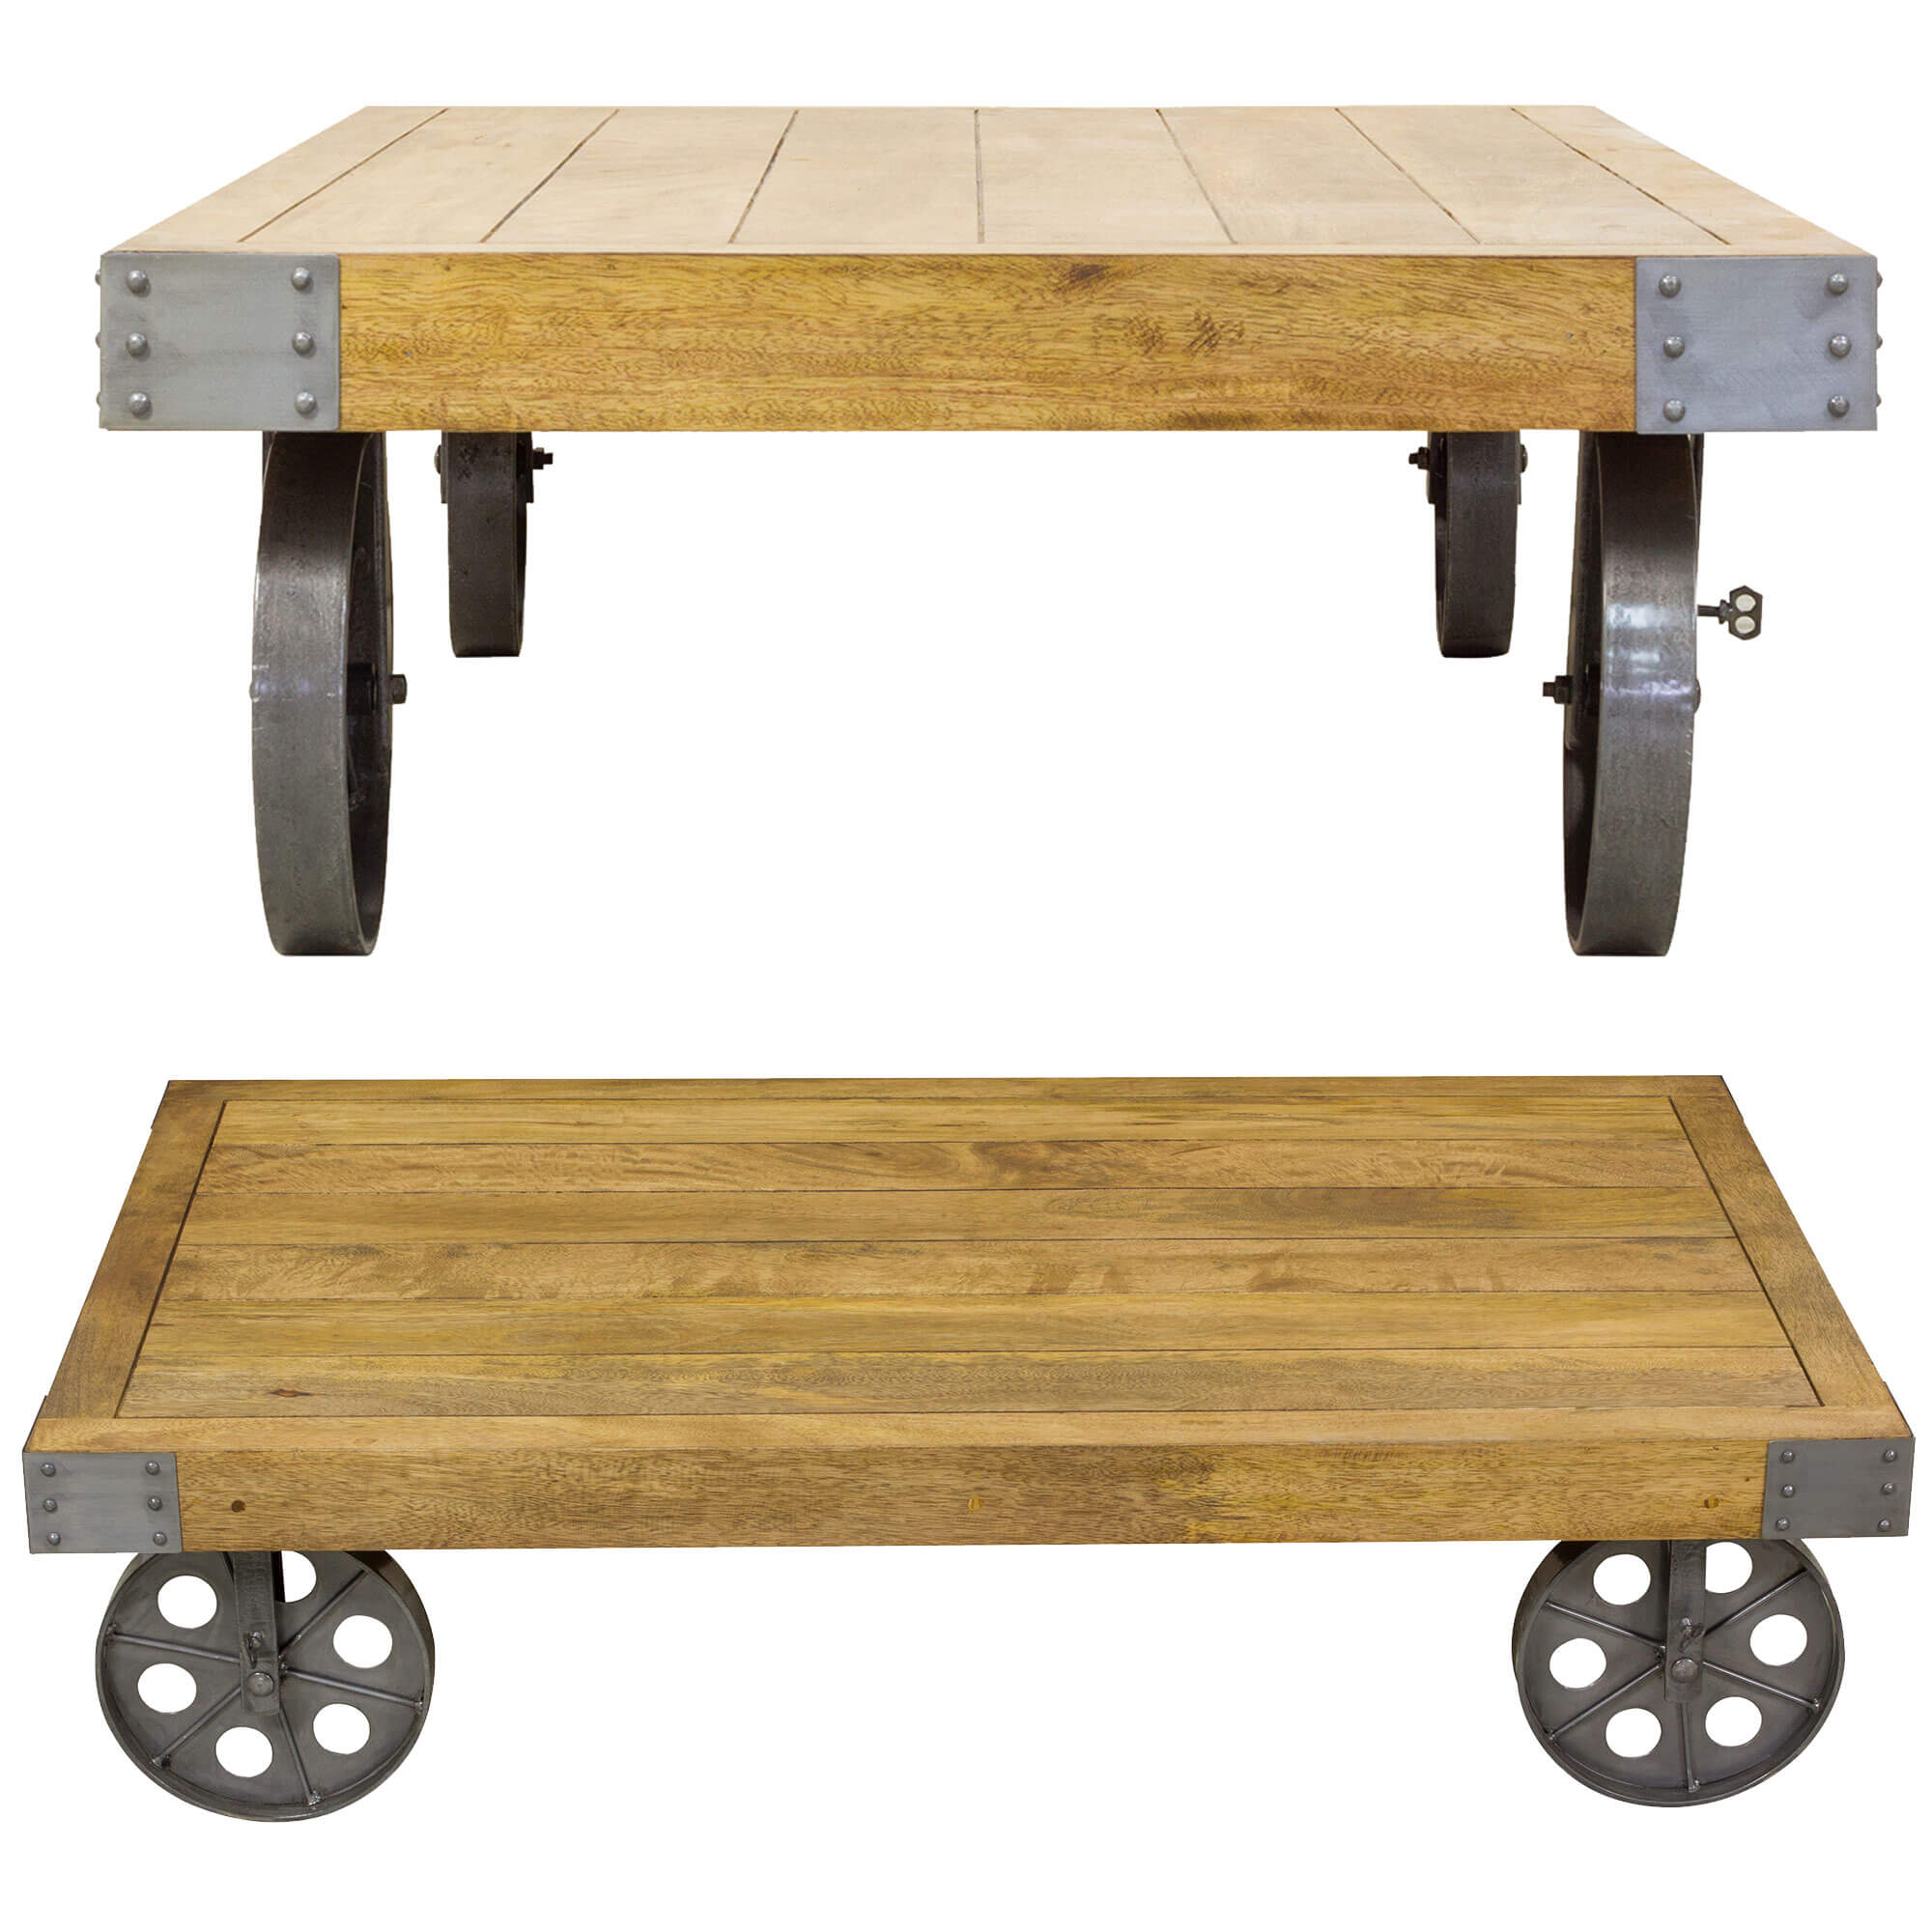 Urban Industrial Coffee table with Wheels | Solid Wood |